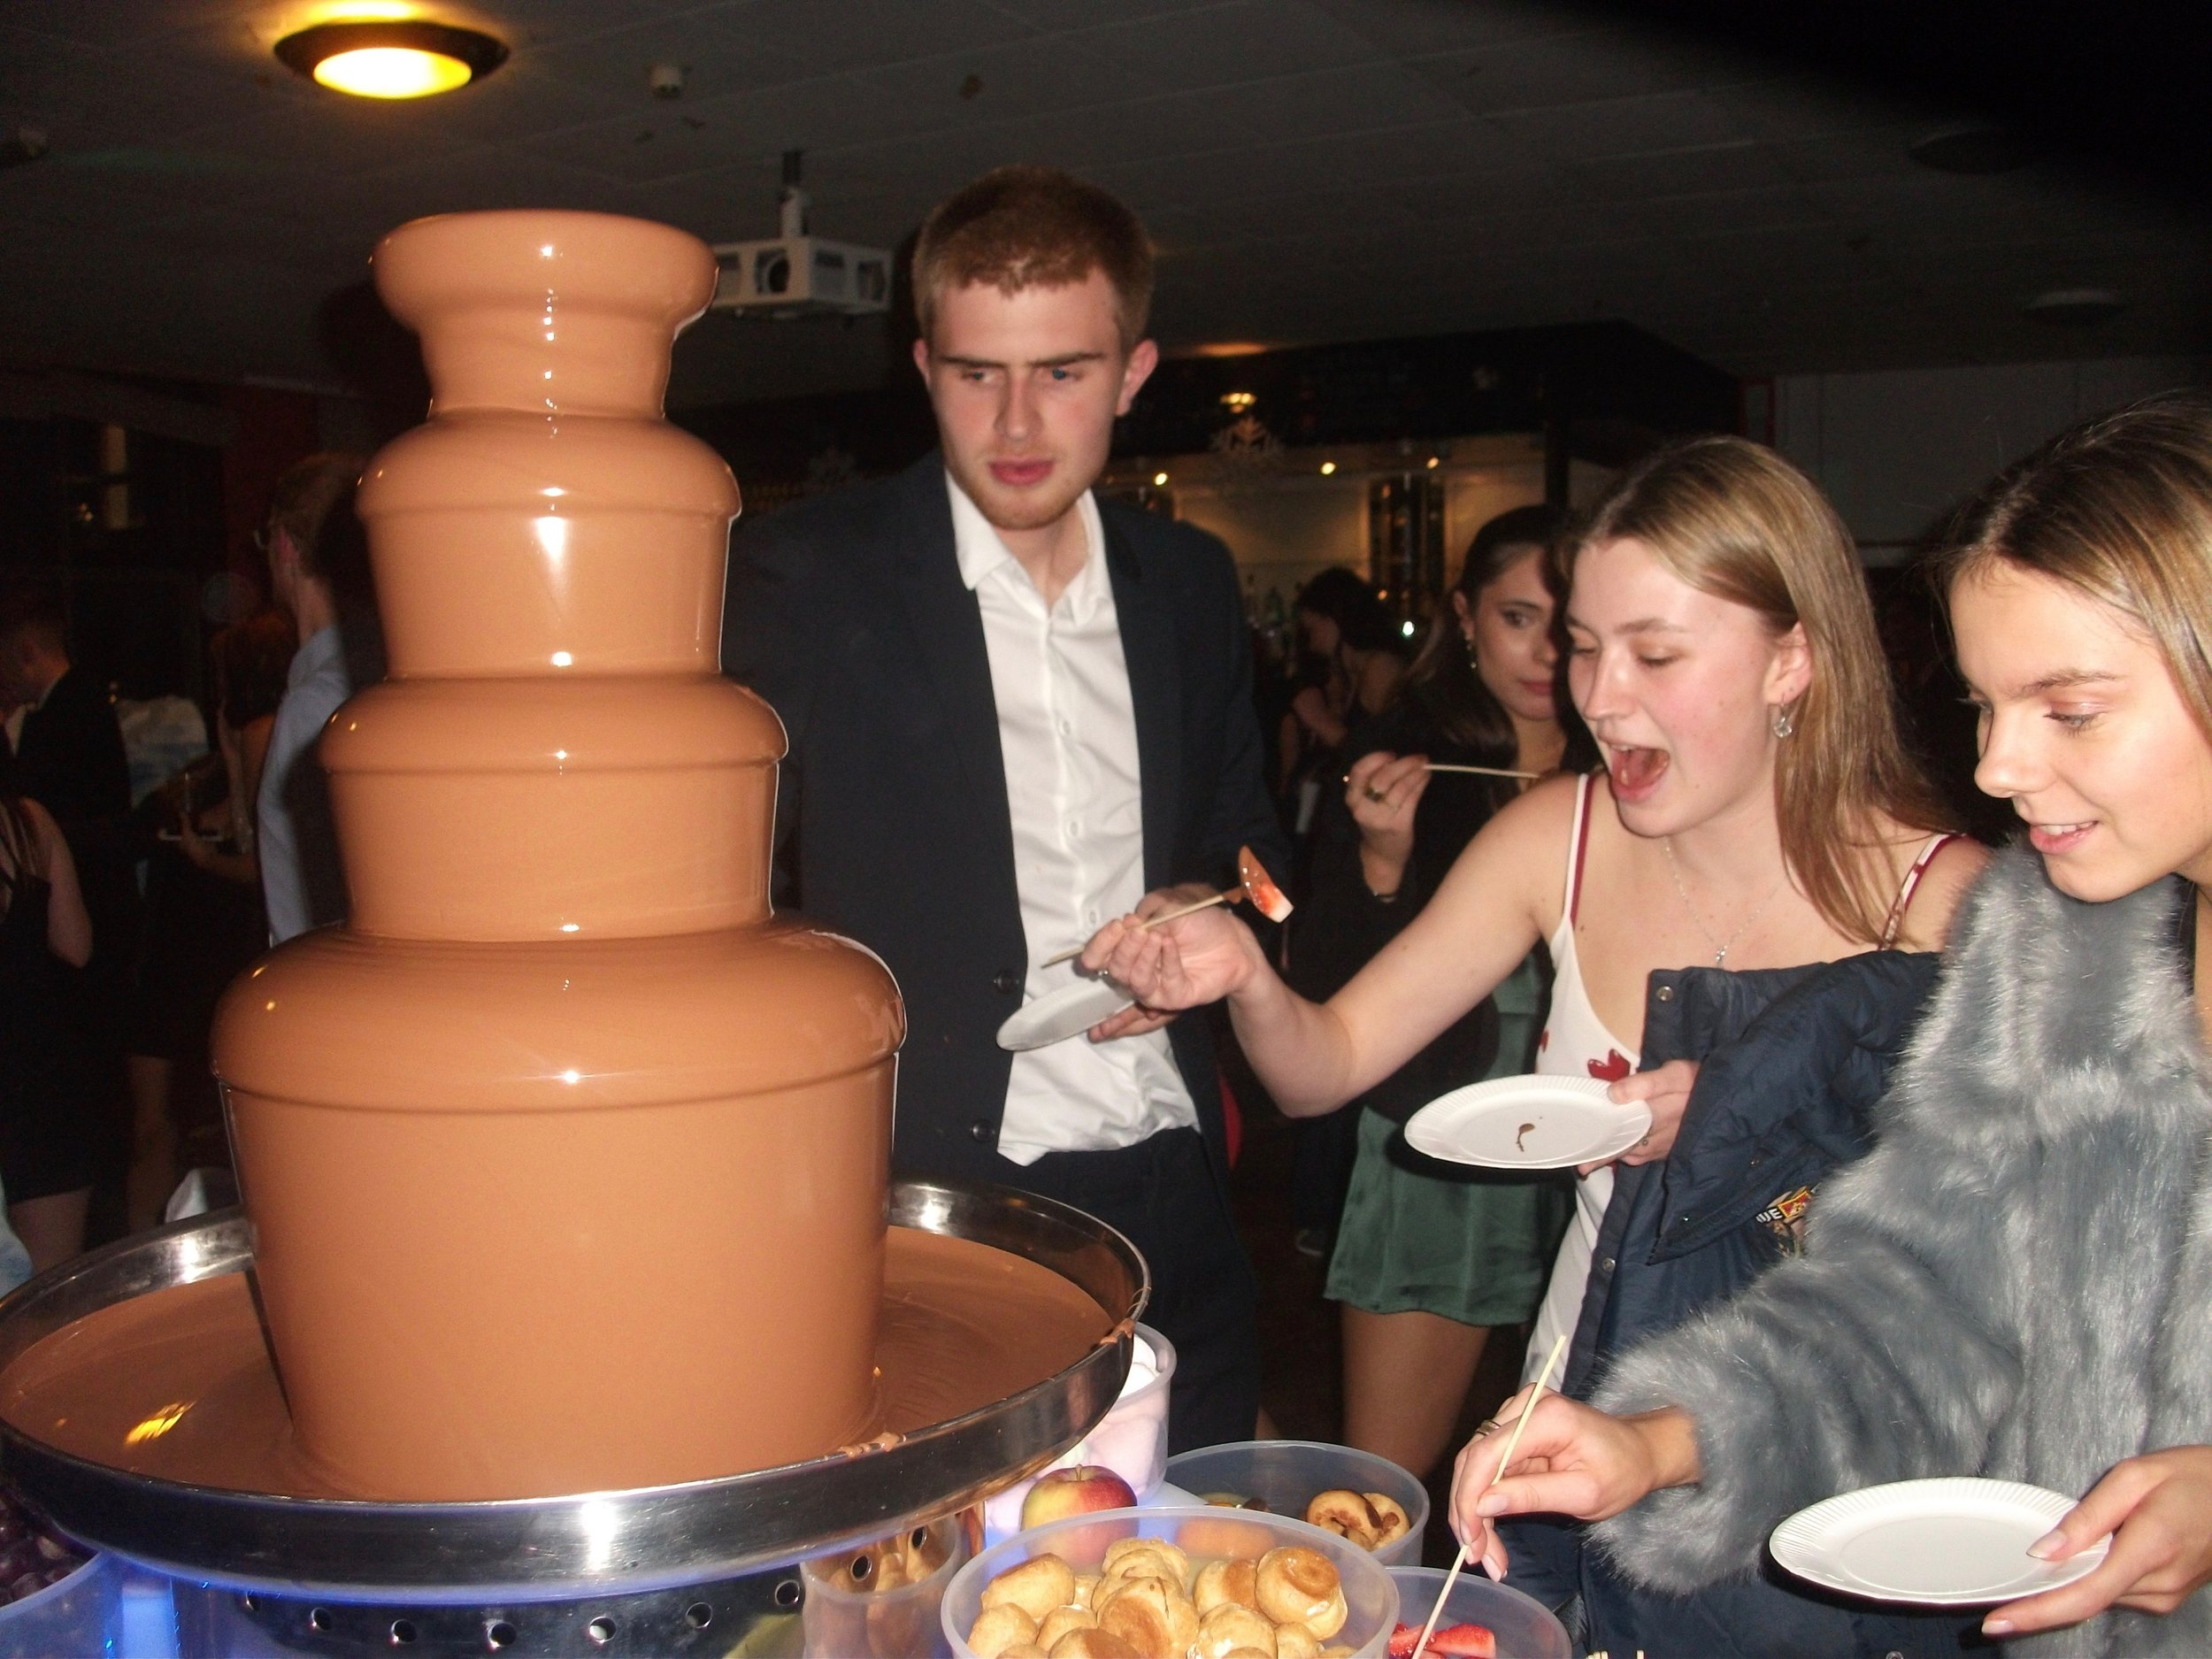 Chocolate Fountain with 10 different dipping items